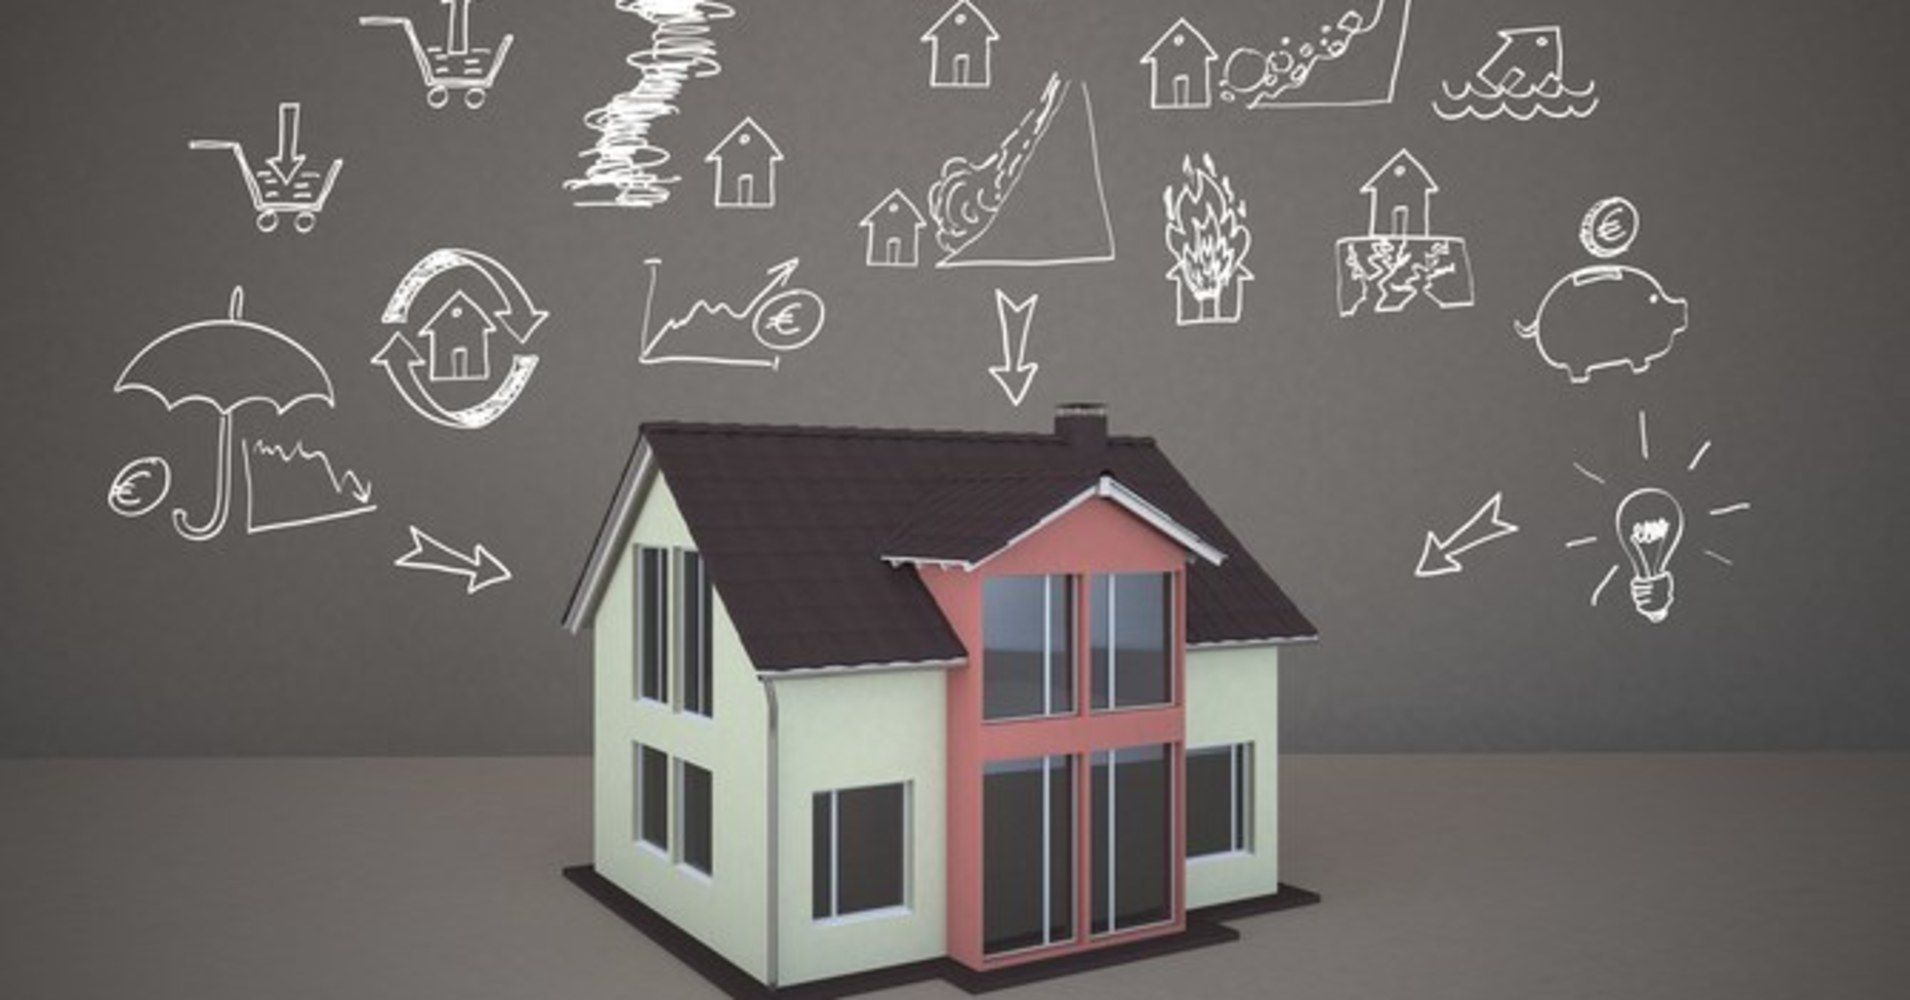 7 Questions You Need To Ask When Buying Homeowners